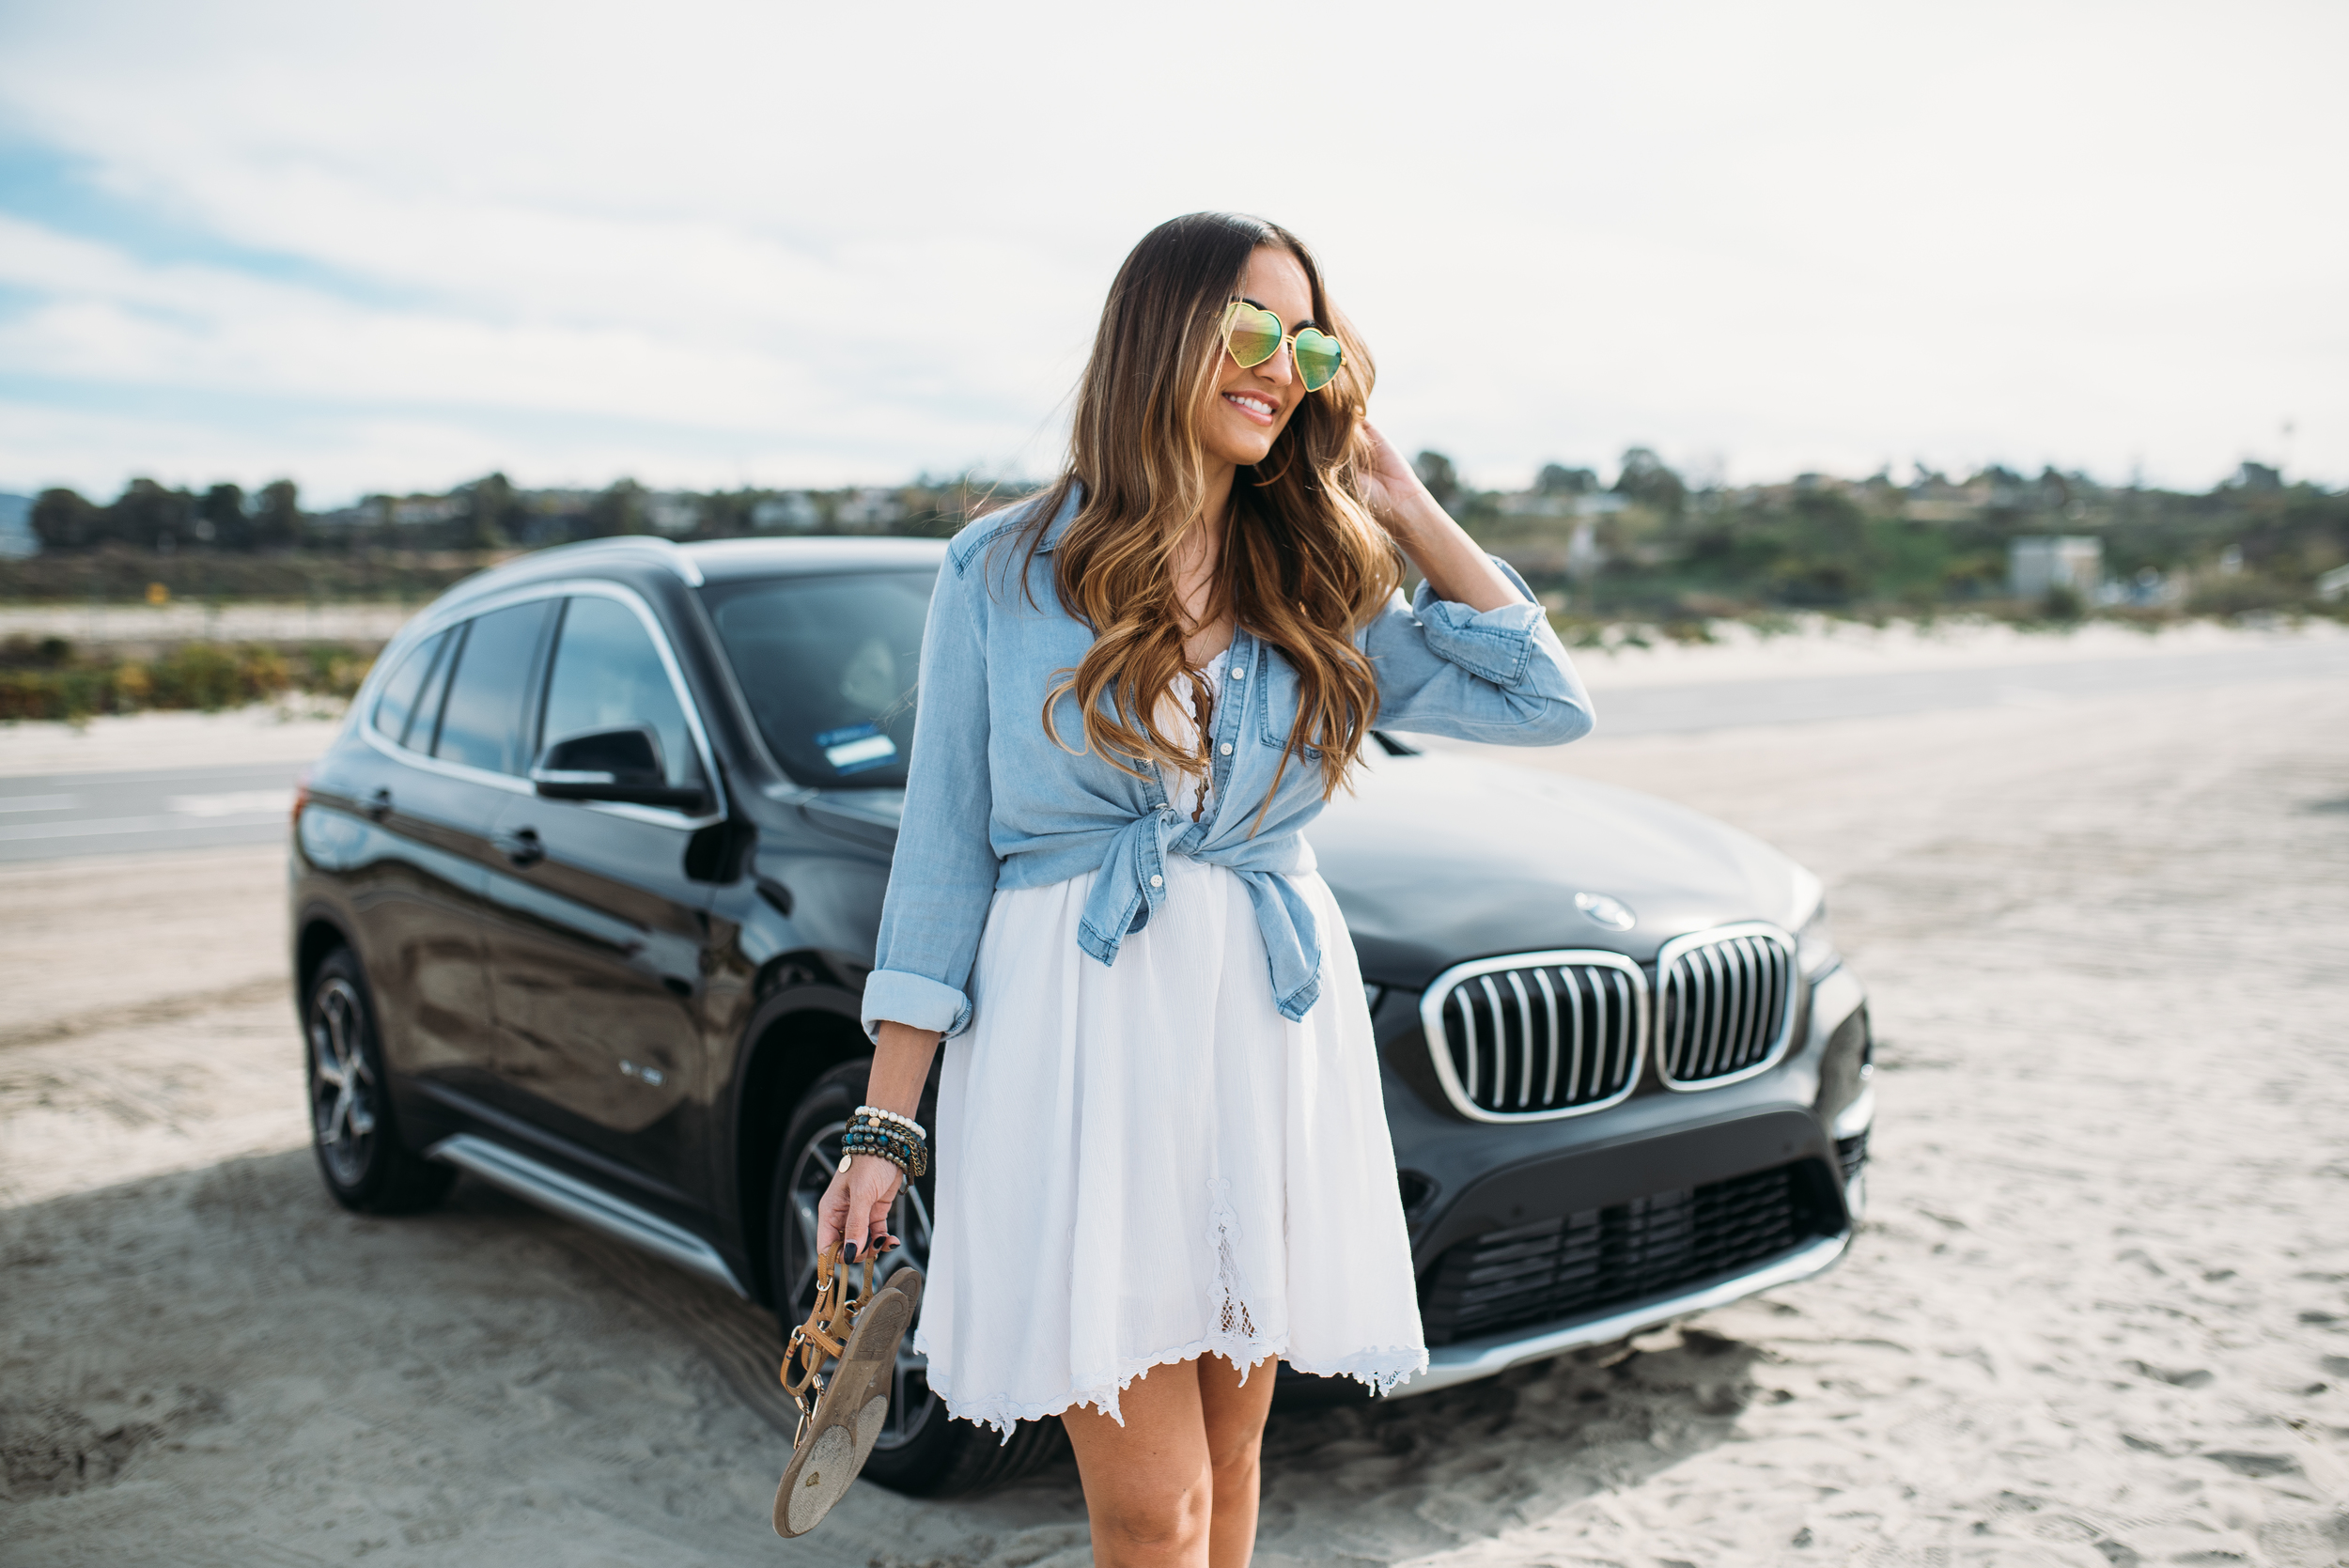 Olia and her new BMW.